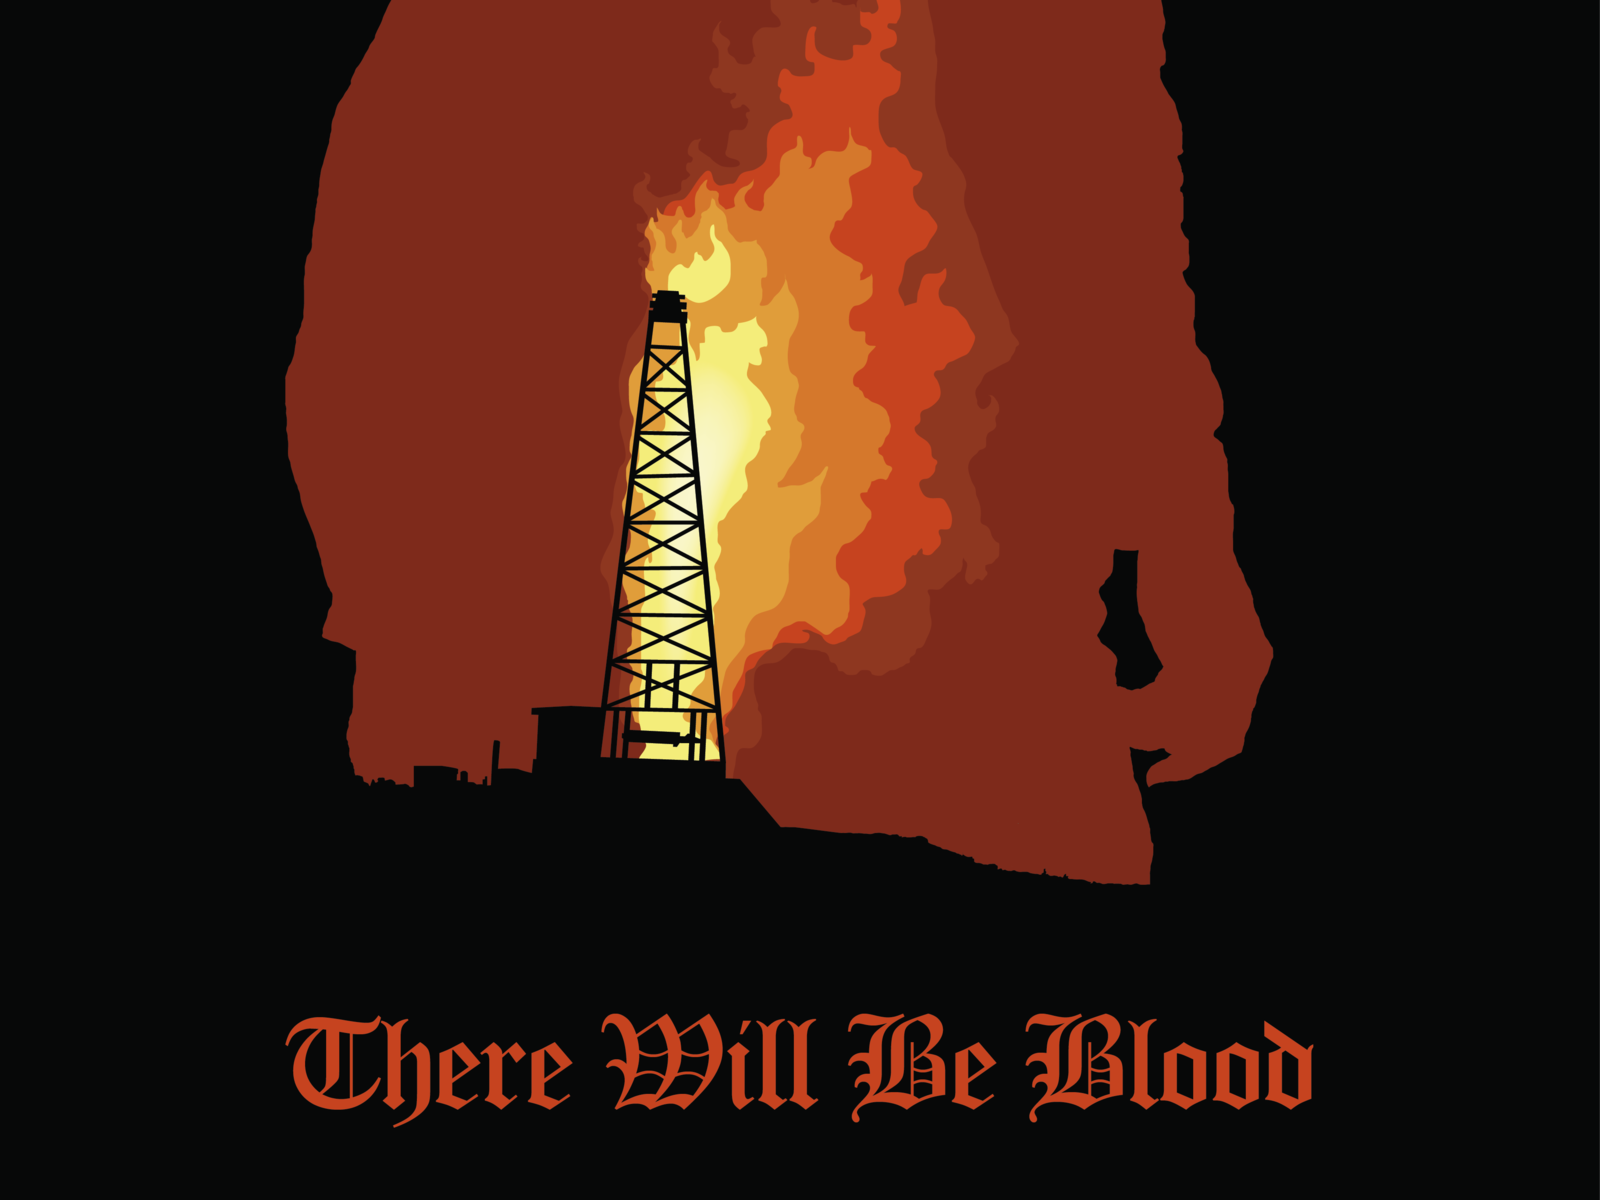 There Will Be Blood Alternative Movie Poster By Joonas Tielinen